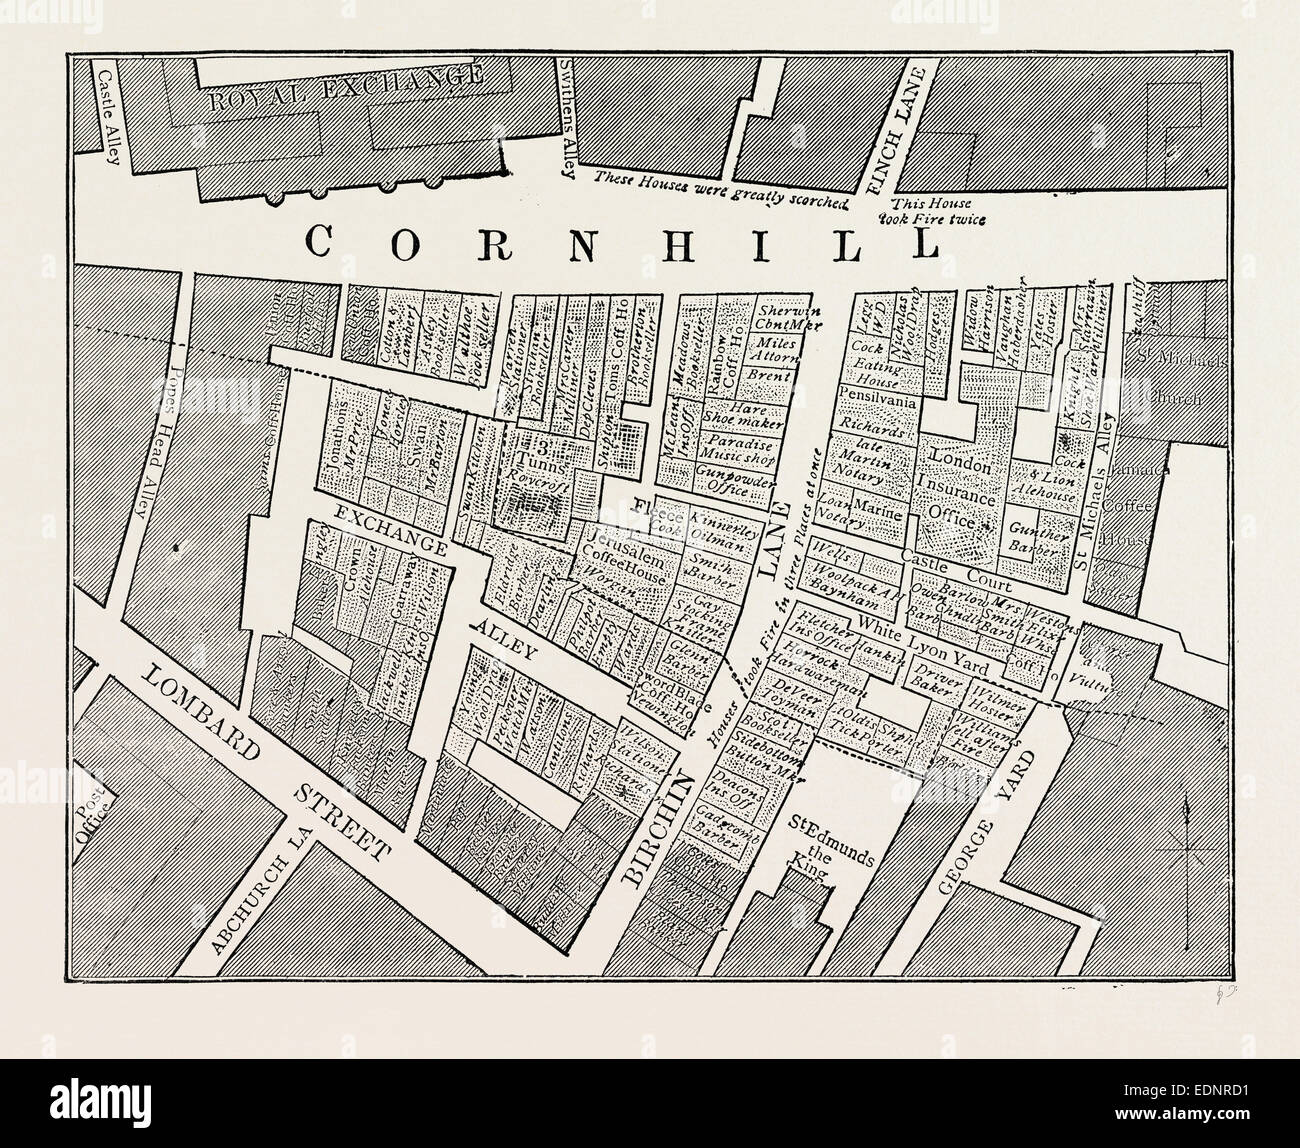 Map showing the extent of the Great Fire in Cornhill in 1748, London, UK, 19th century engraving - Stock Image